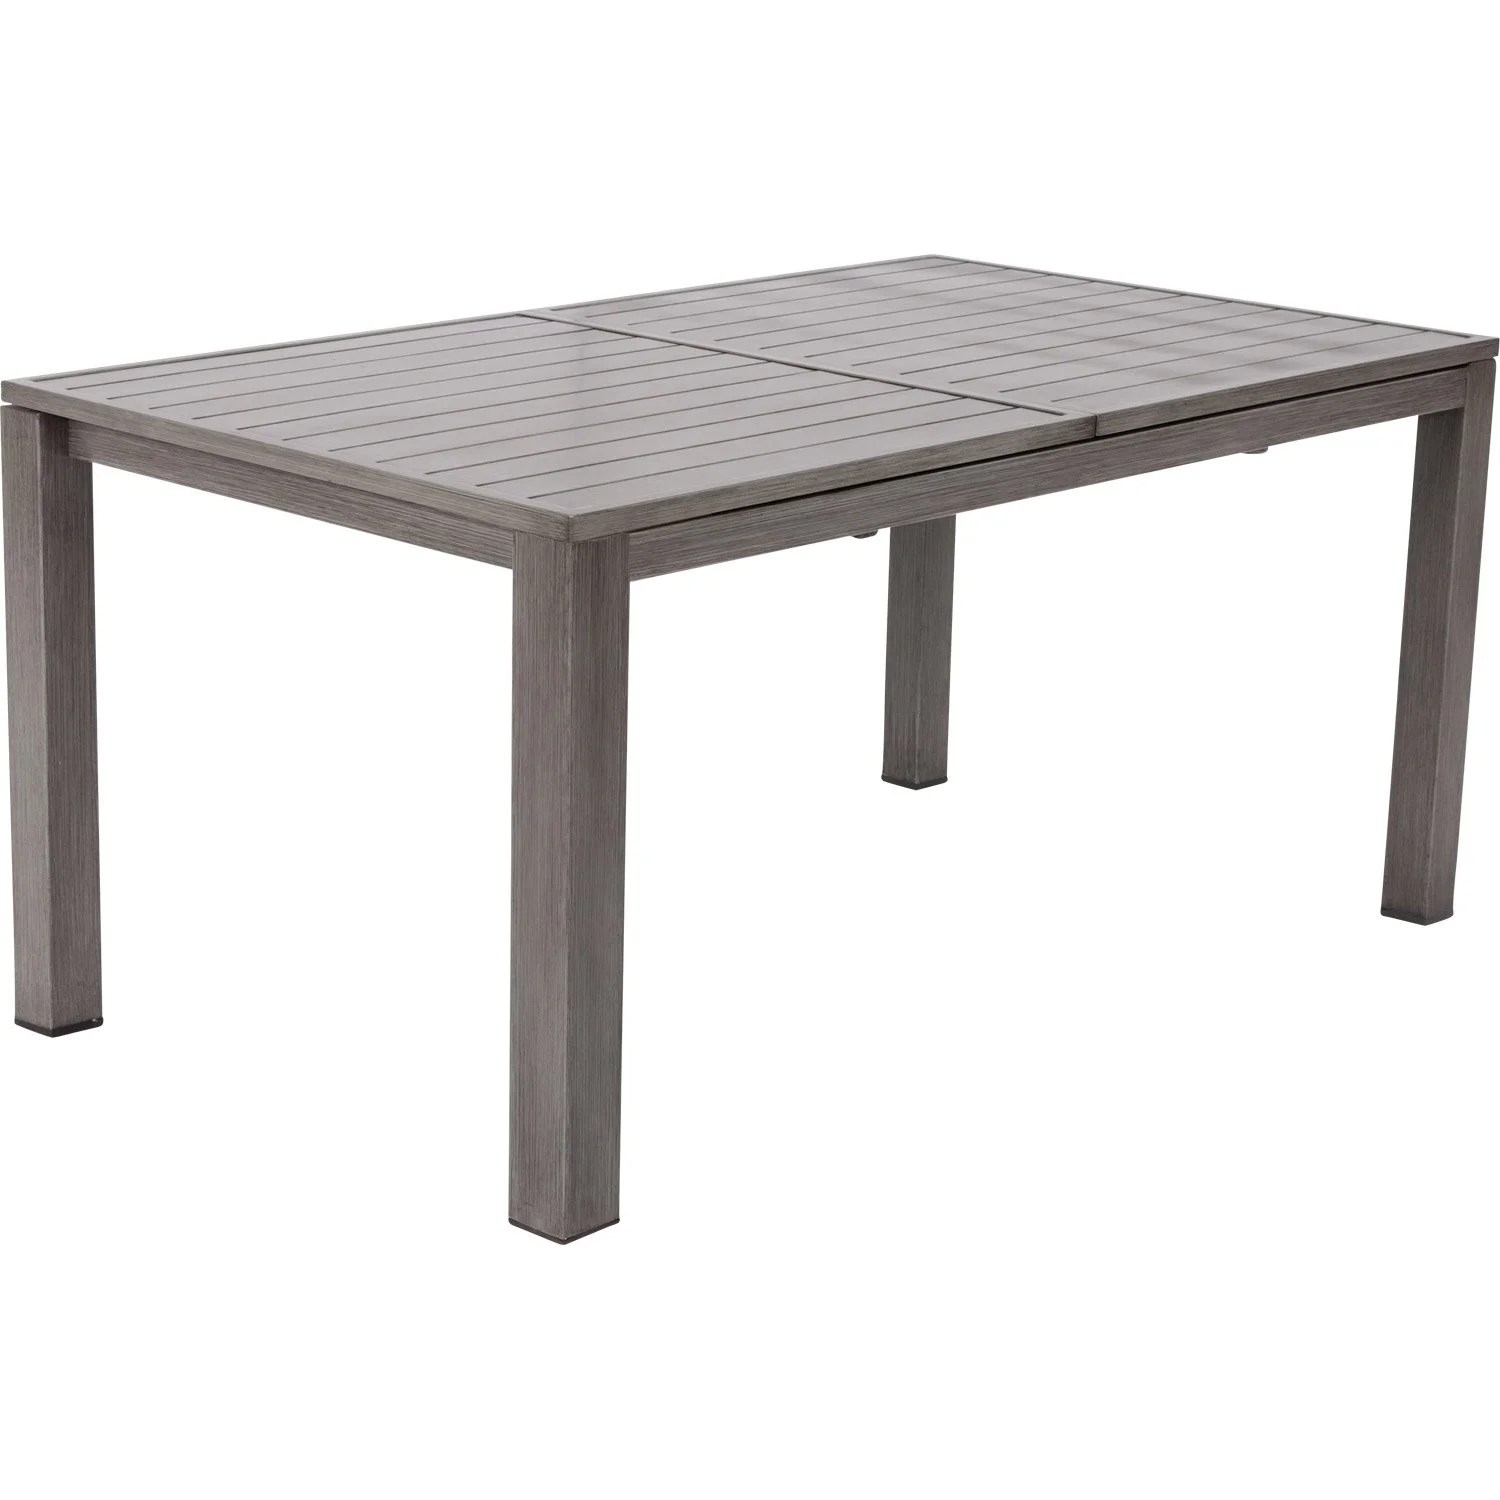 Table De Jardin Bois Table De Jardin Naterial Antibes Rectangulaire Gris Look